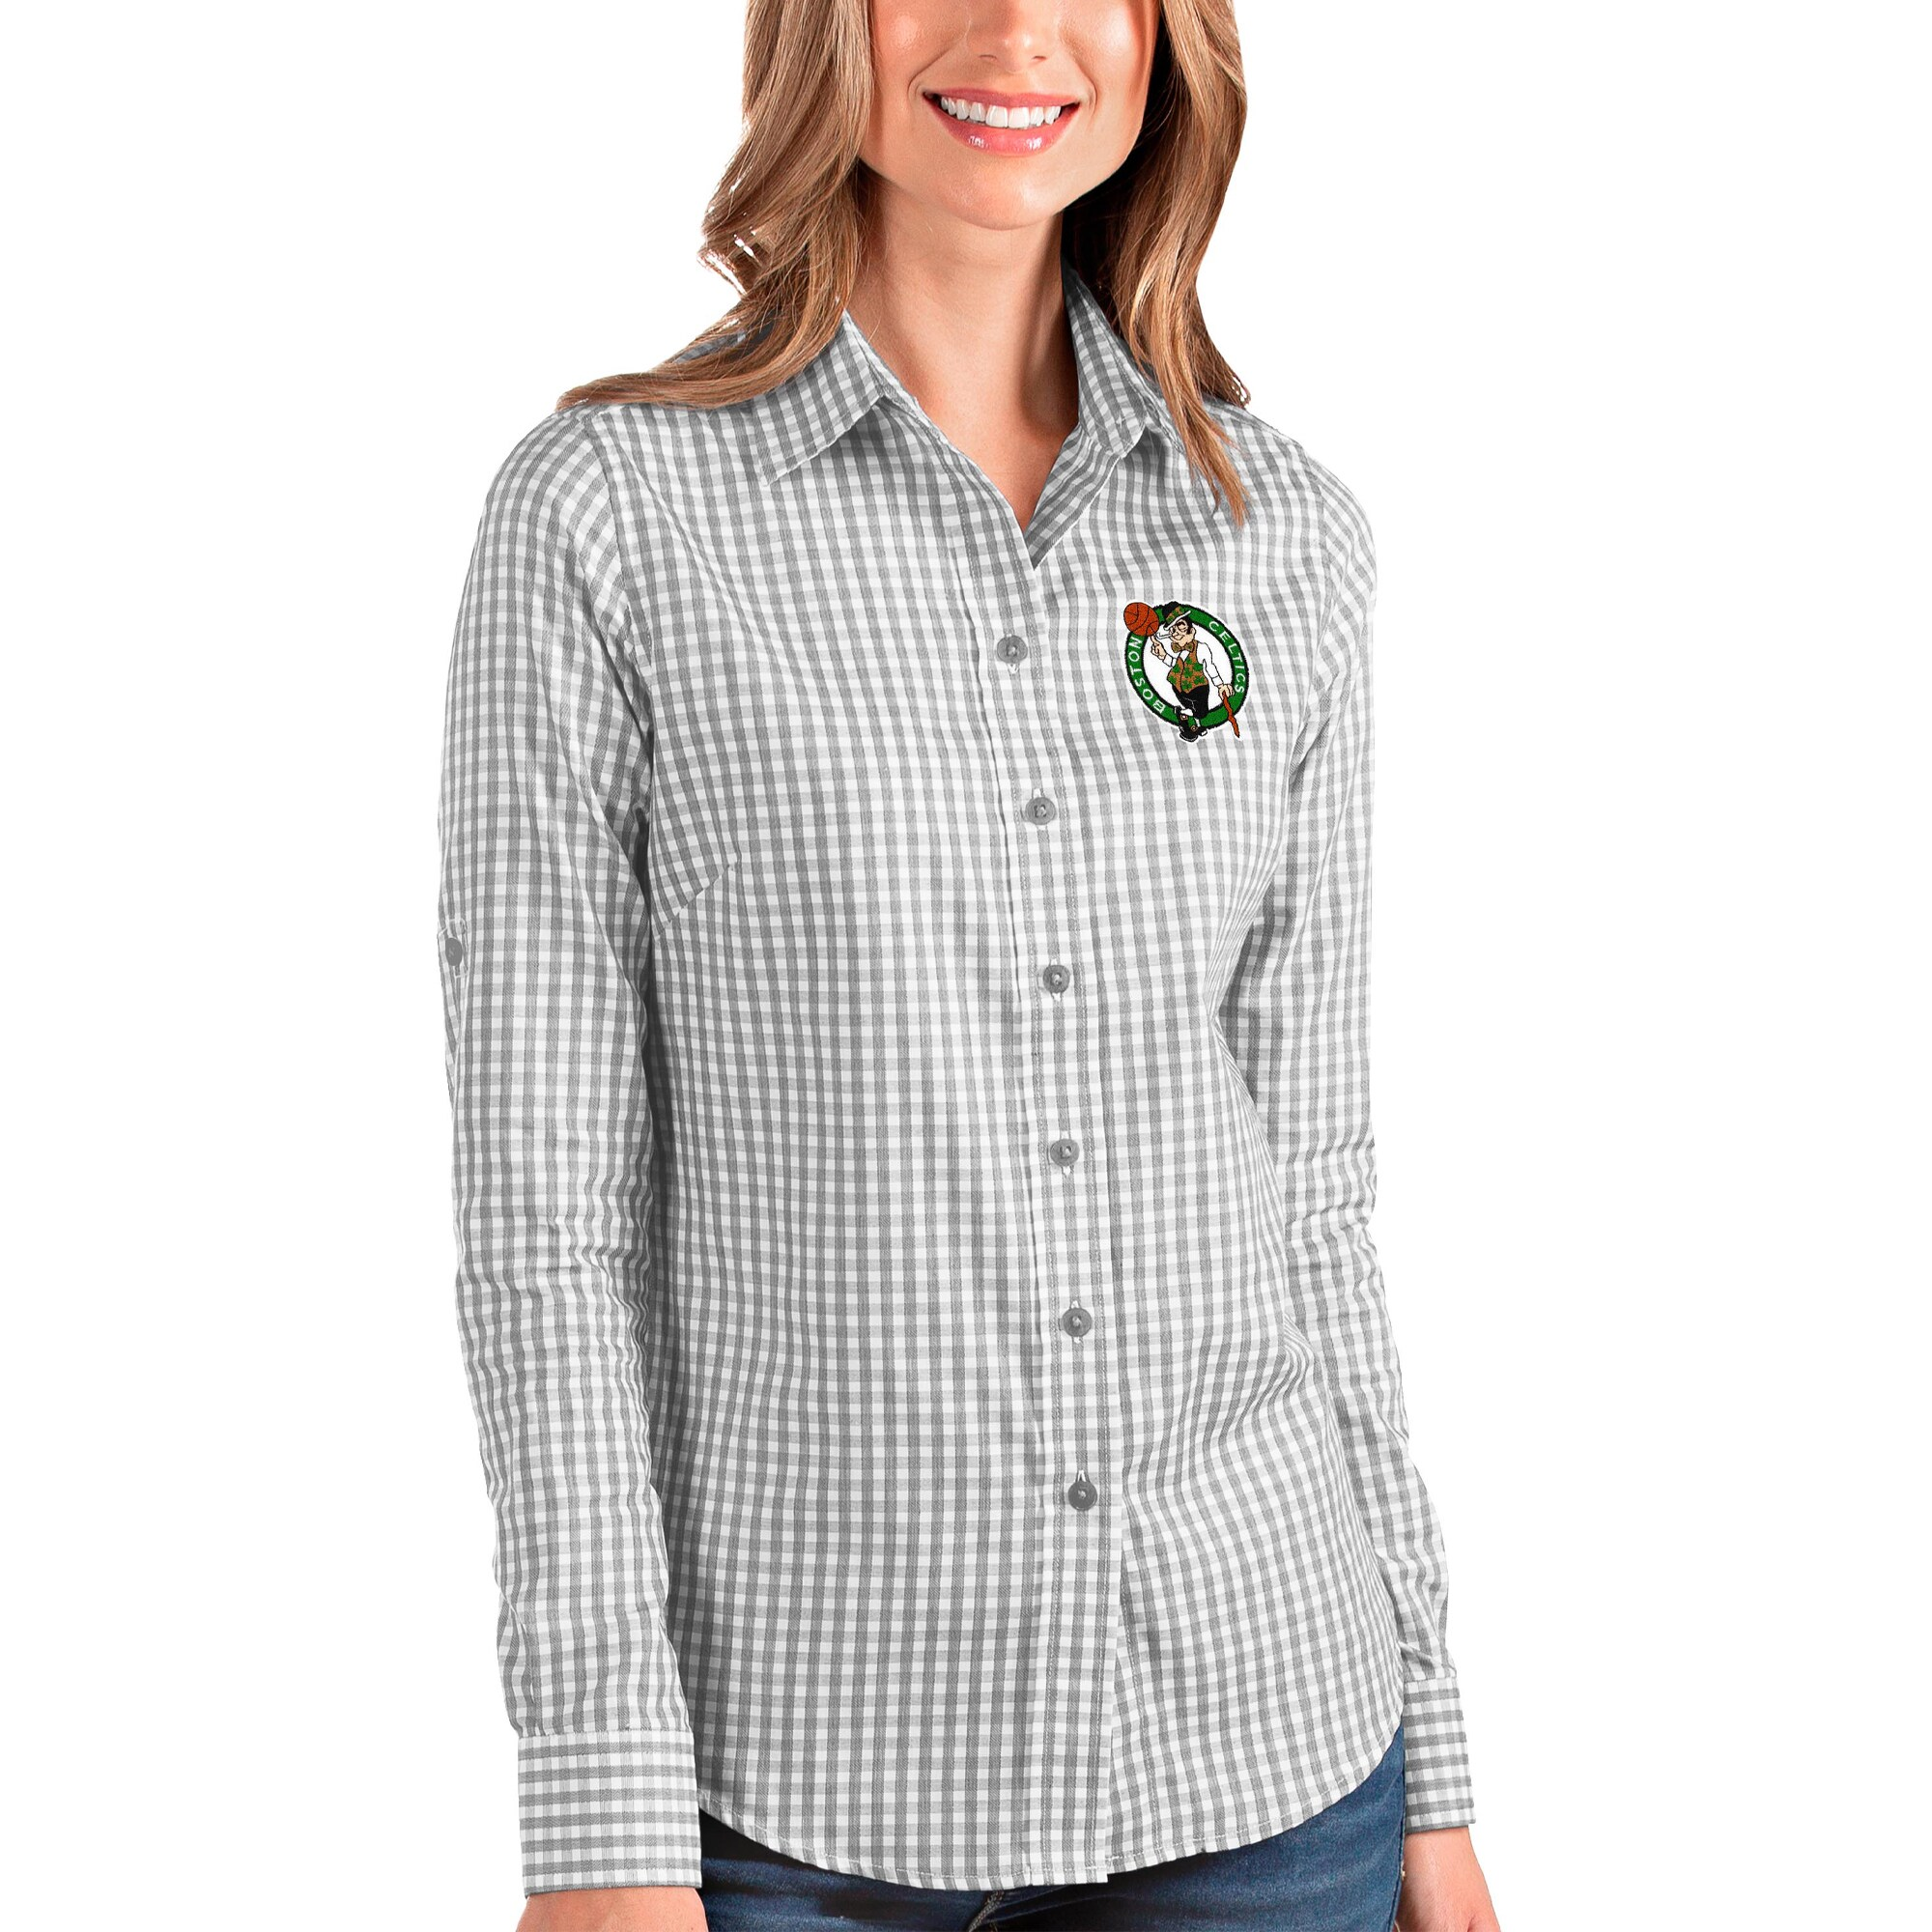 Boston Celtics Antigua Women's Structure Button-Up Long Sleeve Shirt - Charcoal/White